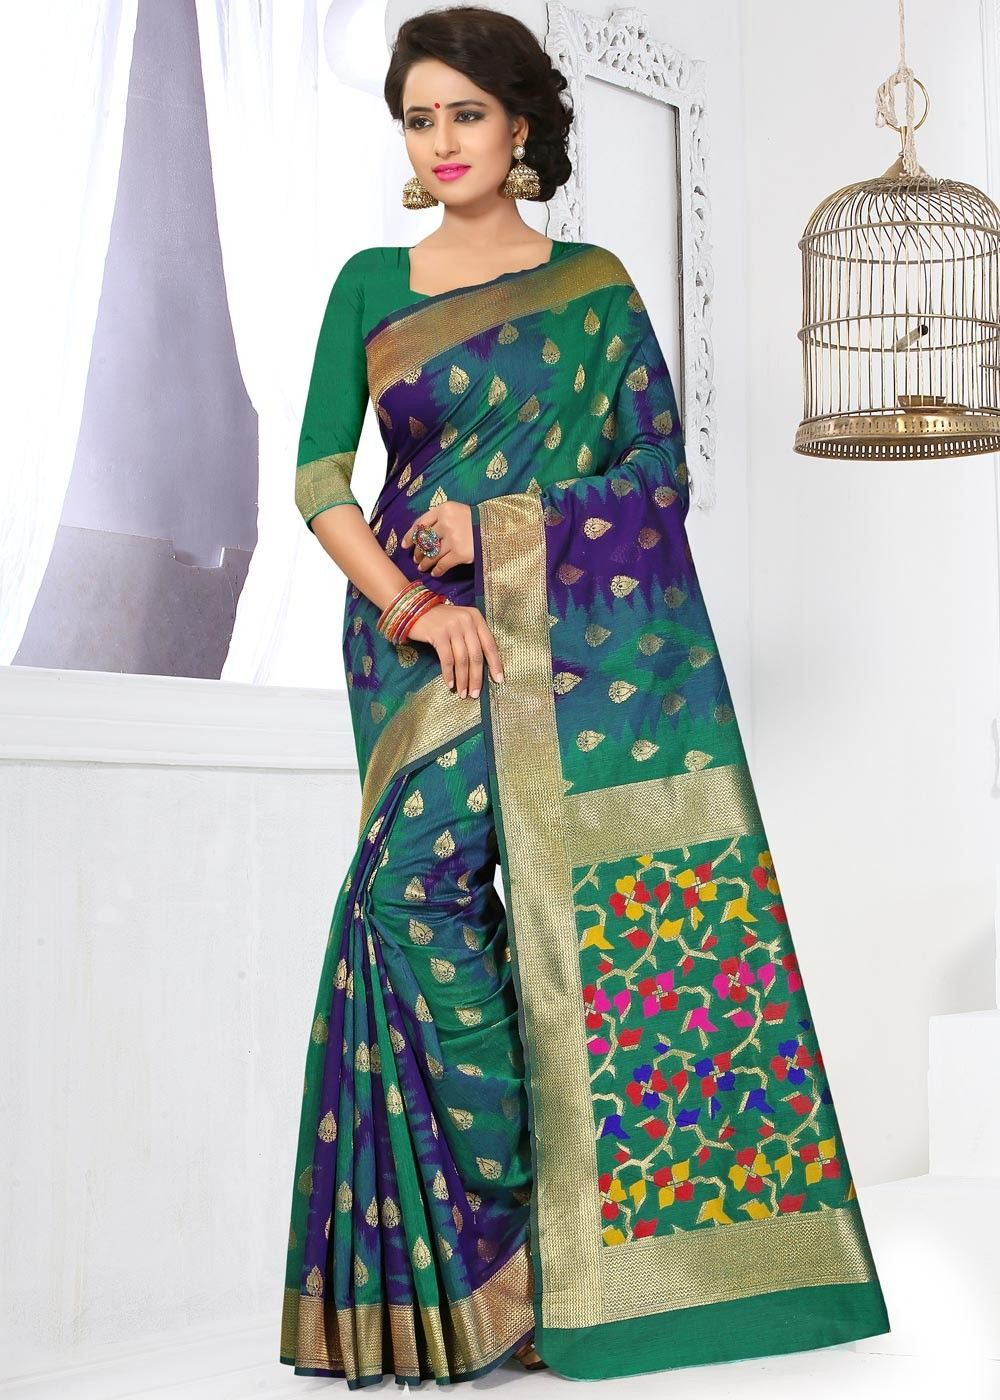 2eea41e2c418d5 Look #gracious by draping this multi tone #banarasi #silk #saree richly  weaved with #zari all over.